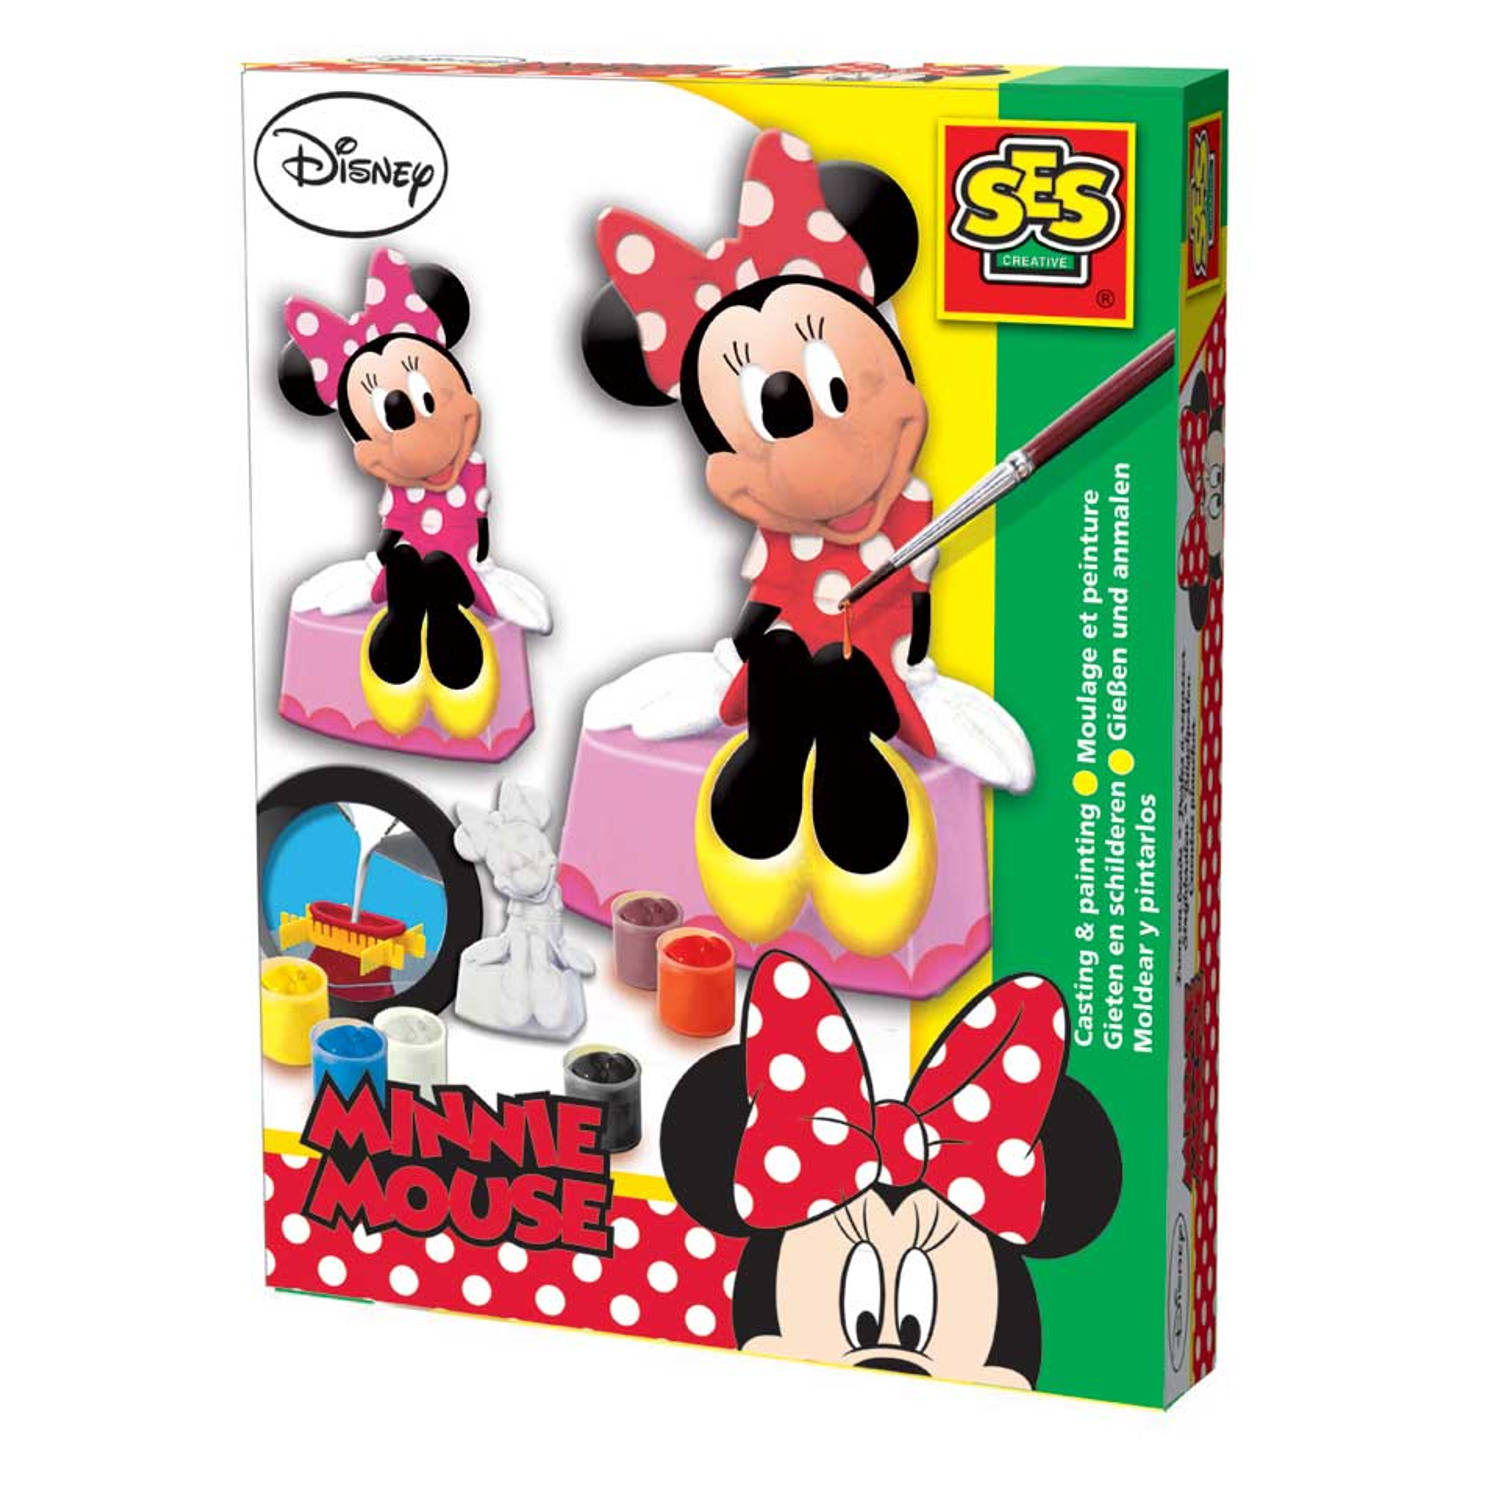 Ses gips gieten Disney Minnie Mouse